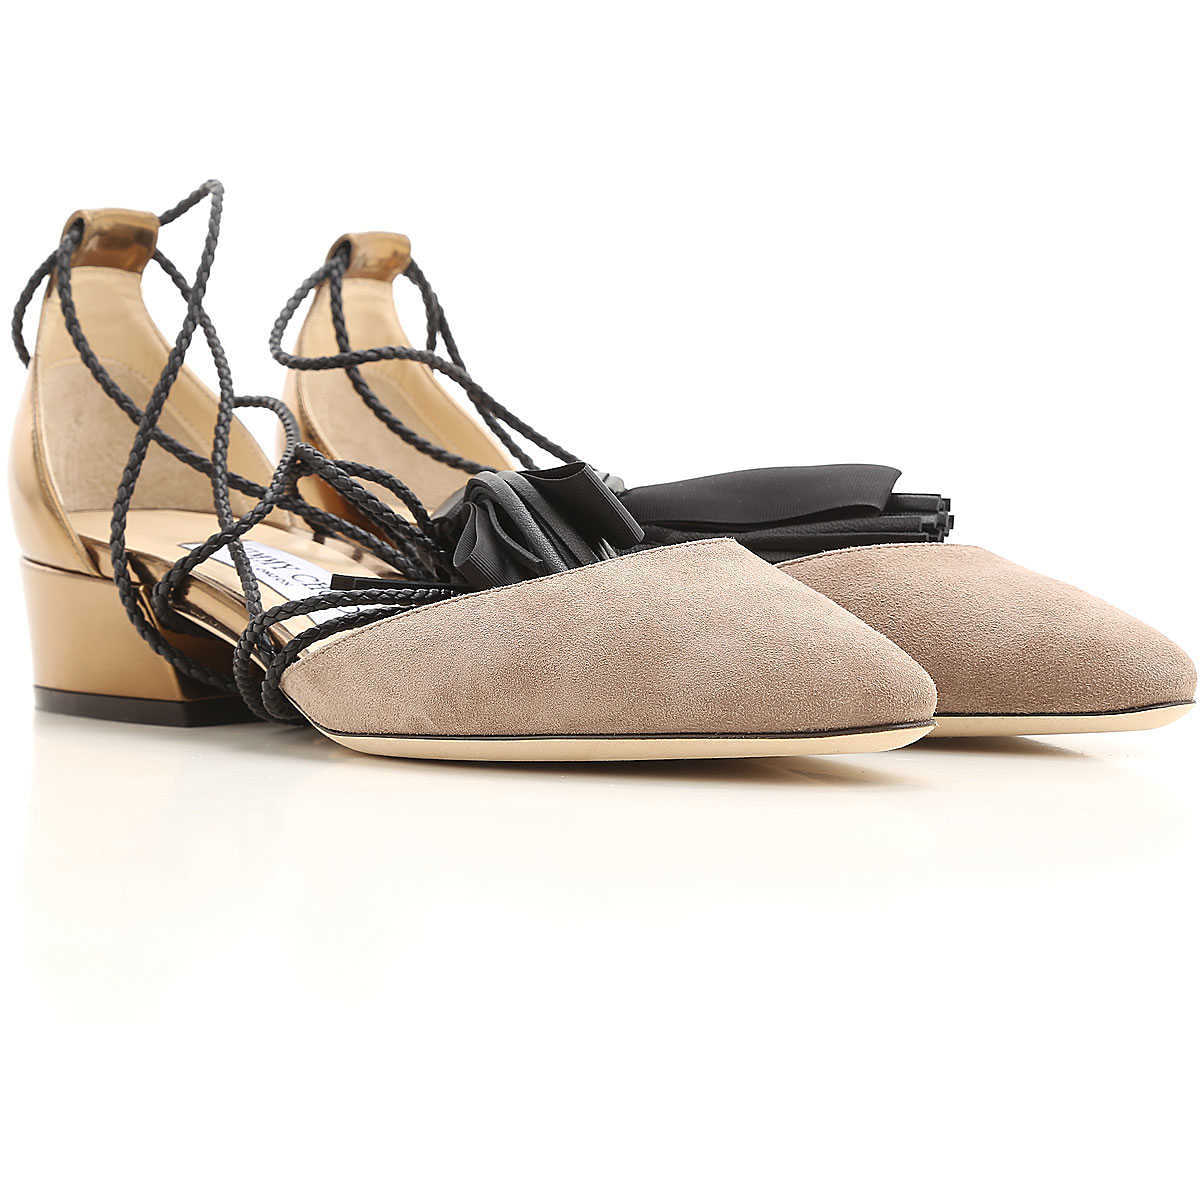 Jimmy Choo Sandals for Women in Outlet Light Mocha Canada - GOOFASH - Womens SANDALS